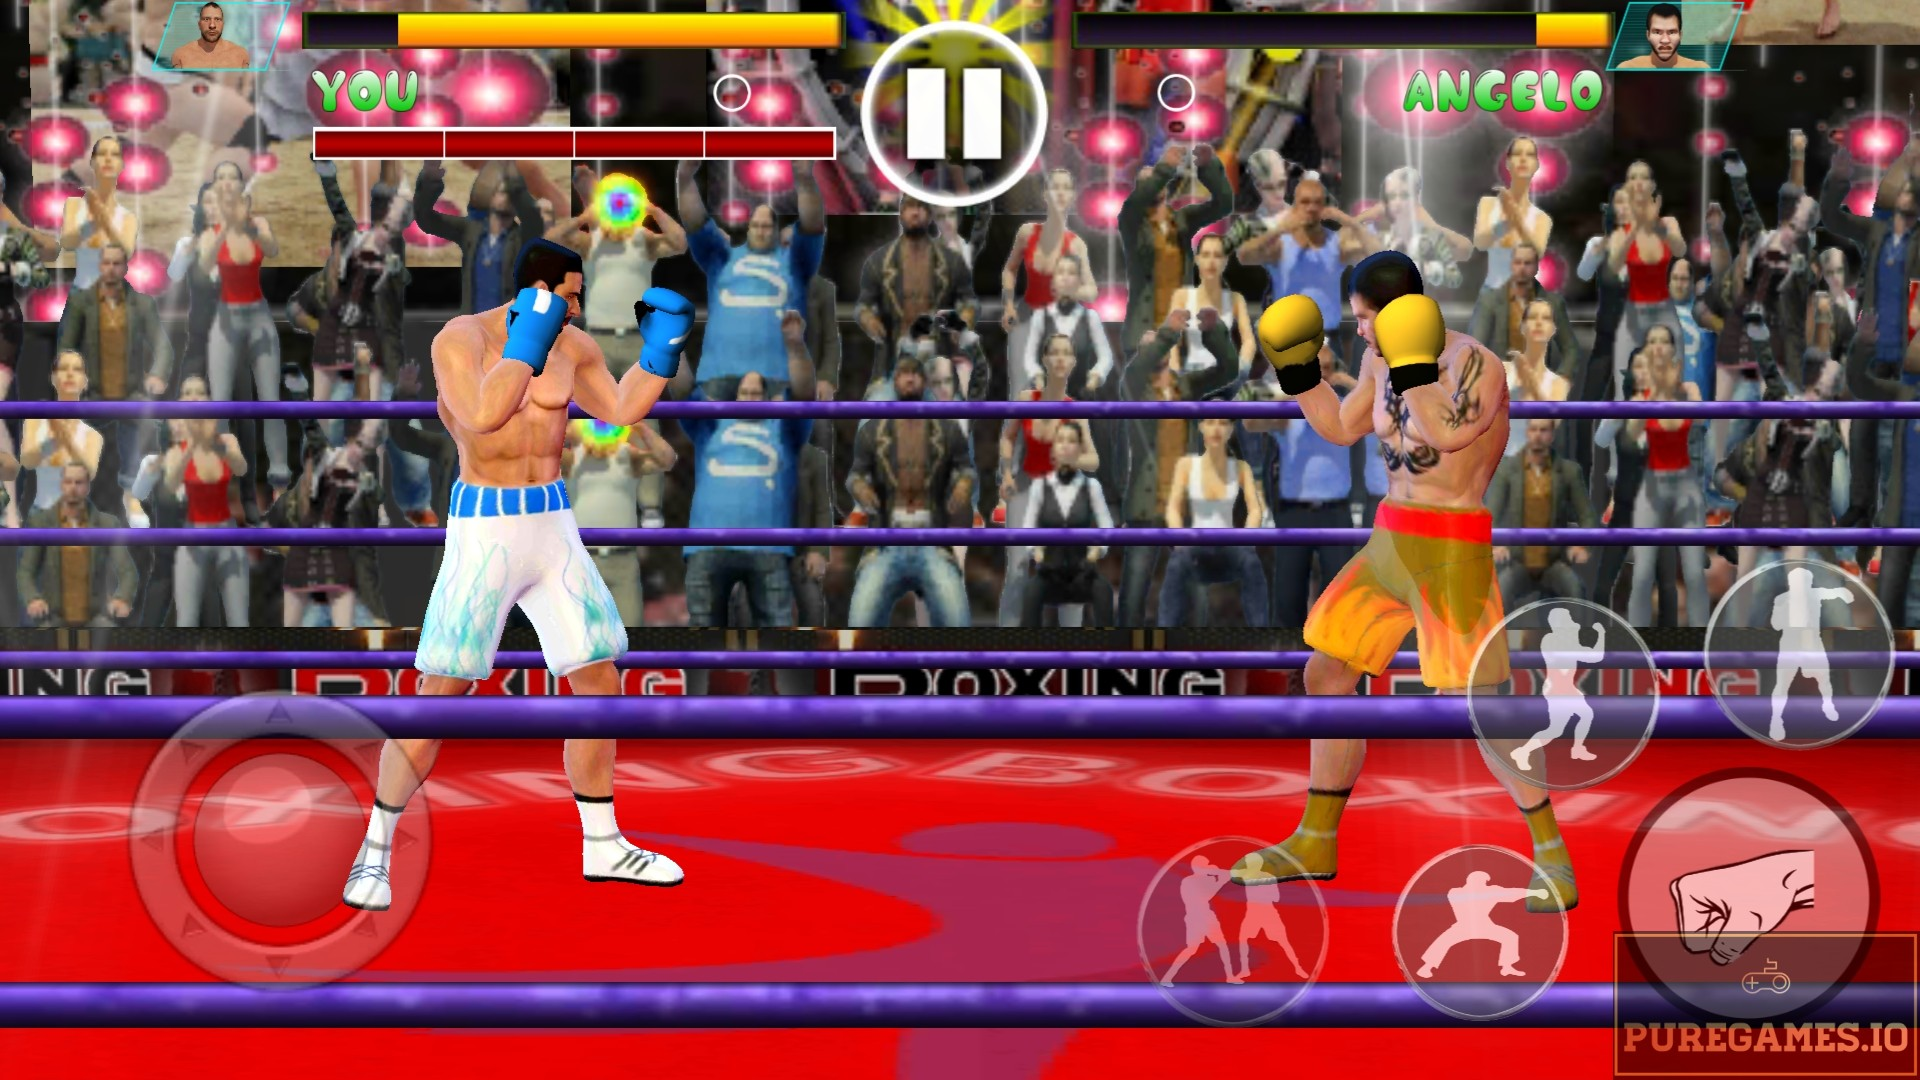 Download Ninja Punch Boxing Warrior: Kung Fu Karate Fighter APK - For Android 14